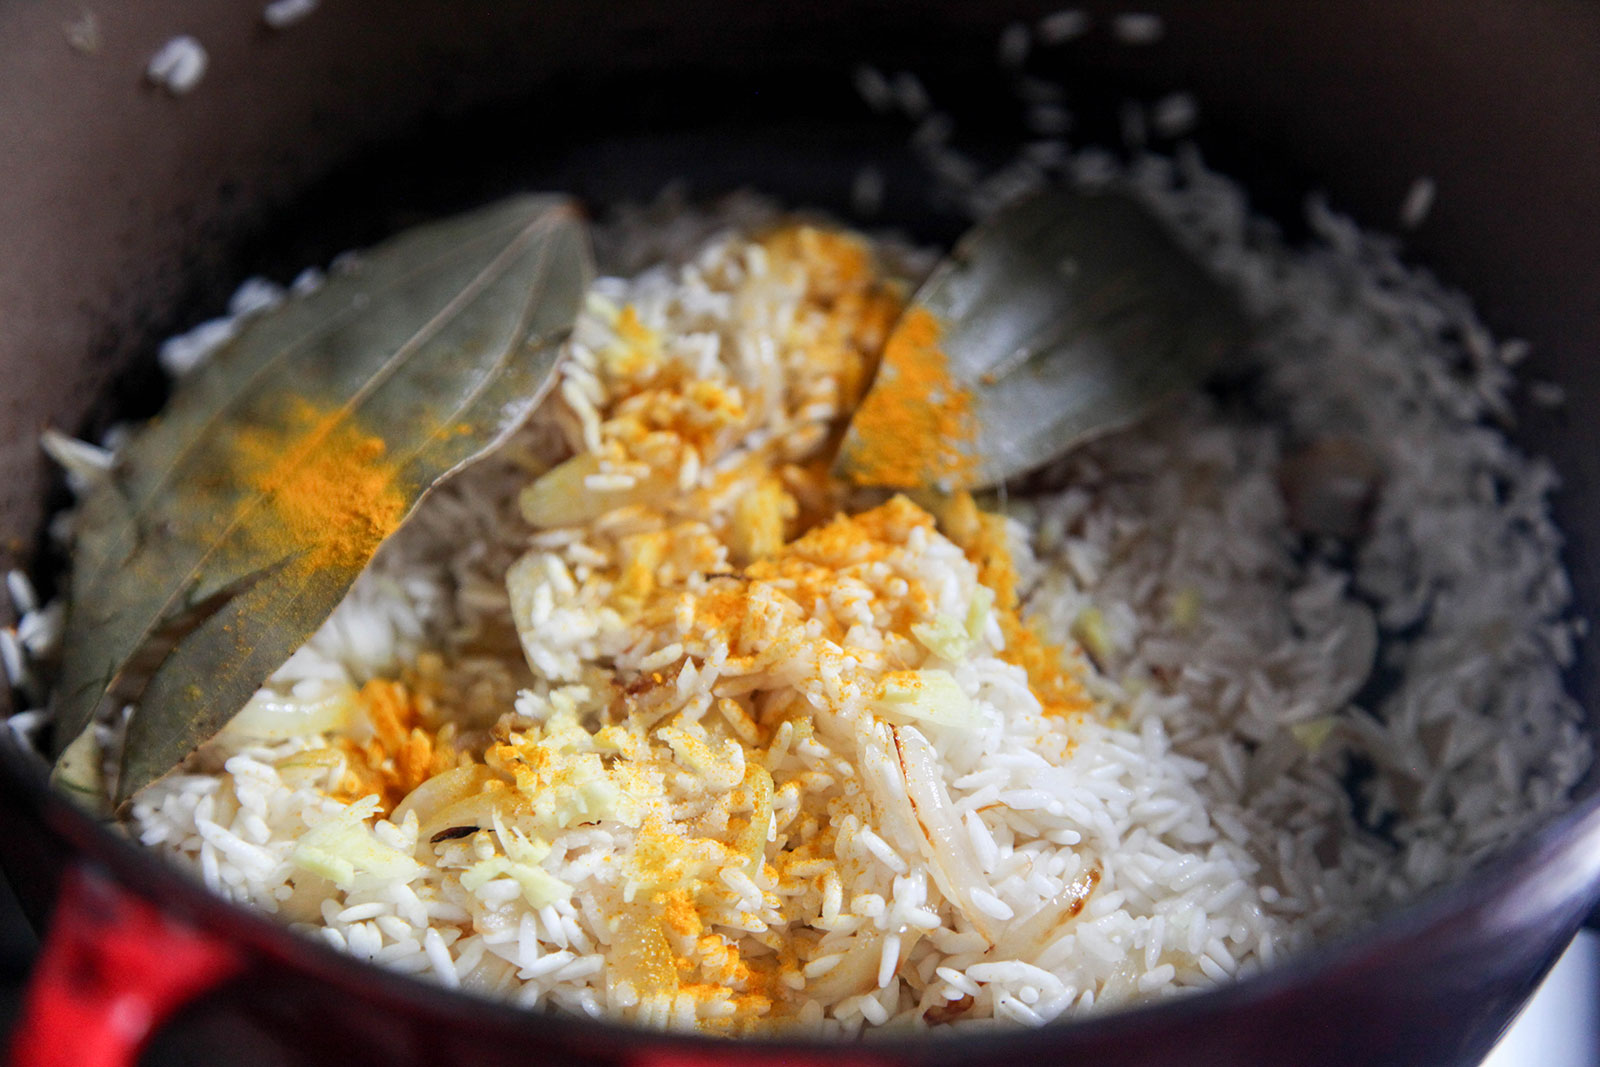 Frying sticky rice with spices for Sylheti Biron Polau